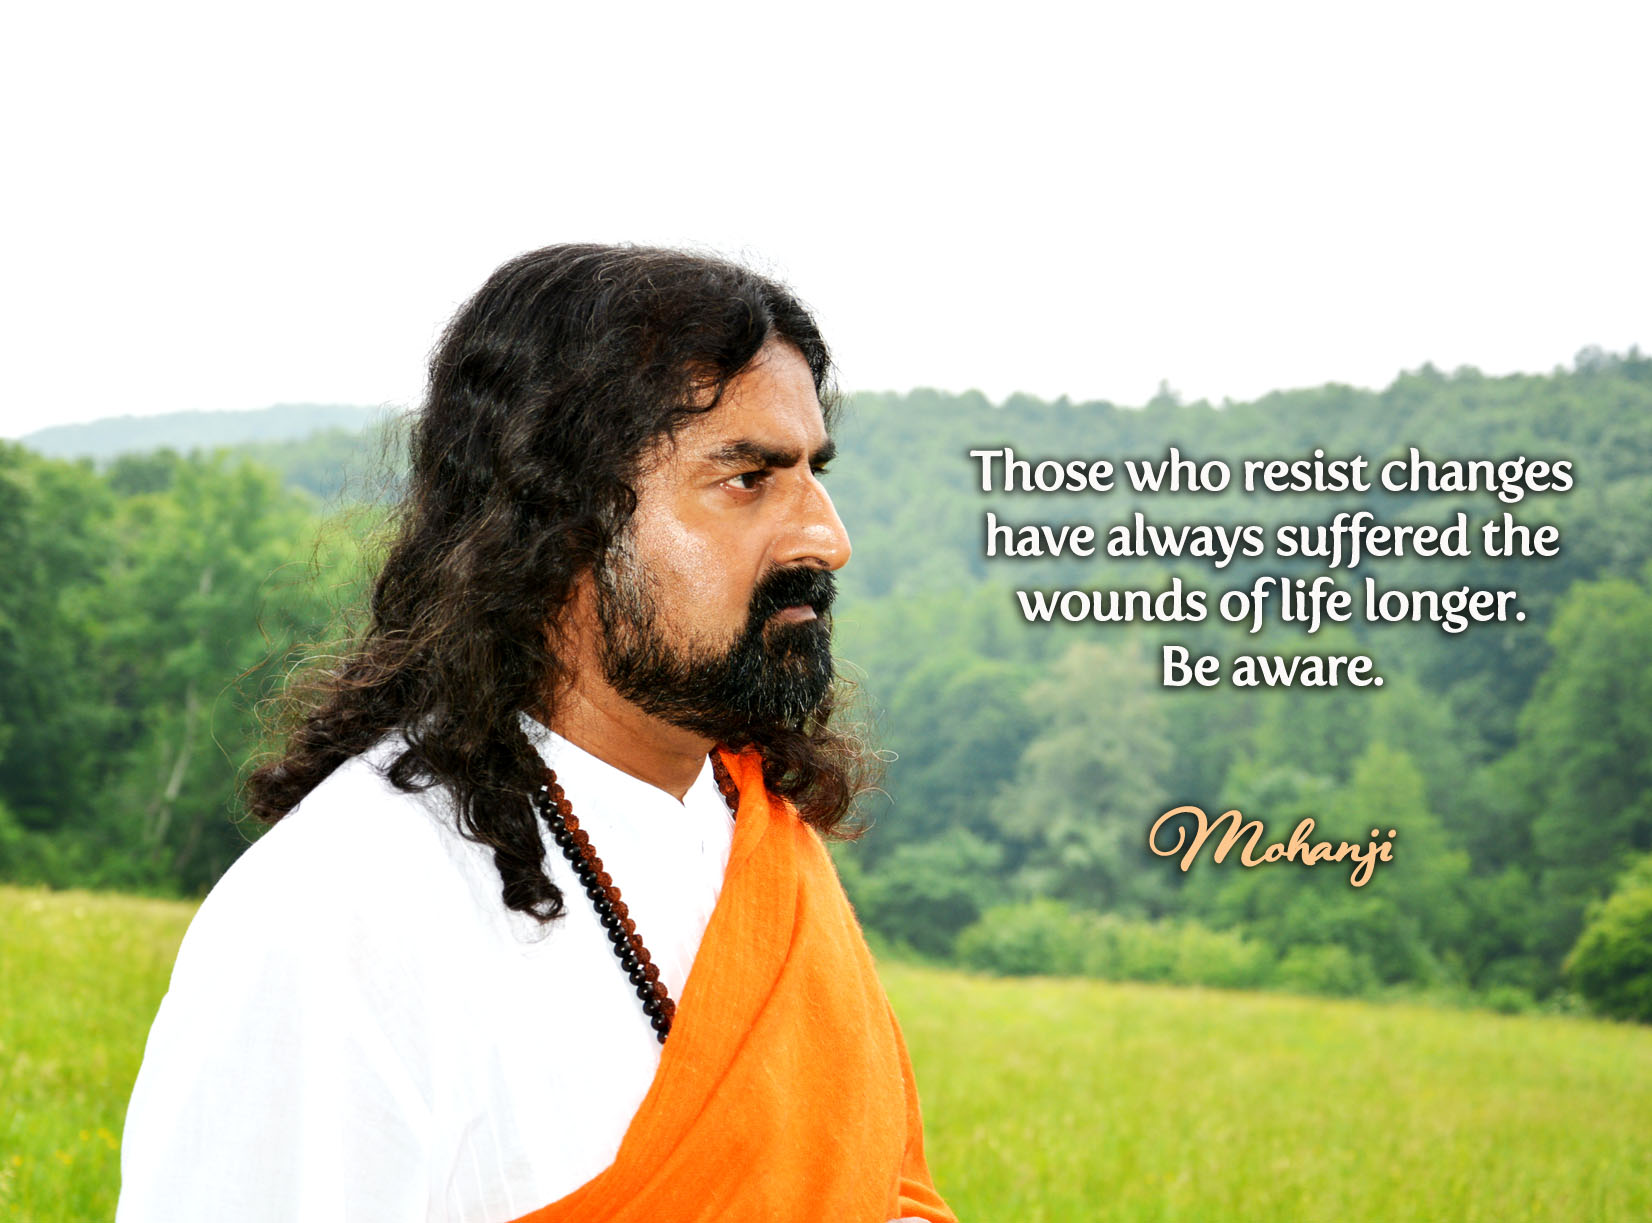 mohanji-quote-those-who-resist-changes